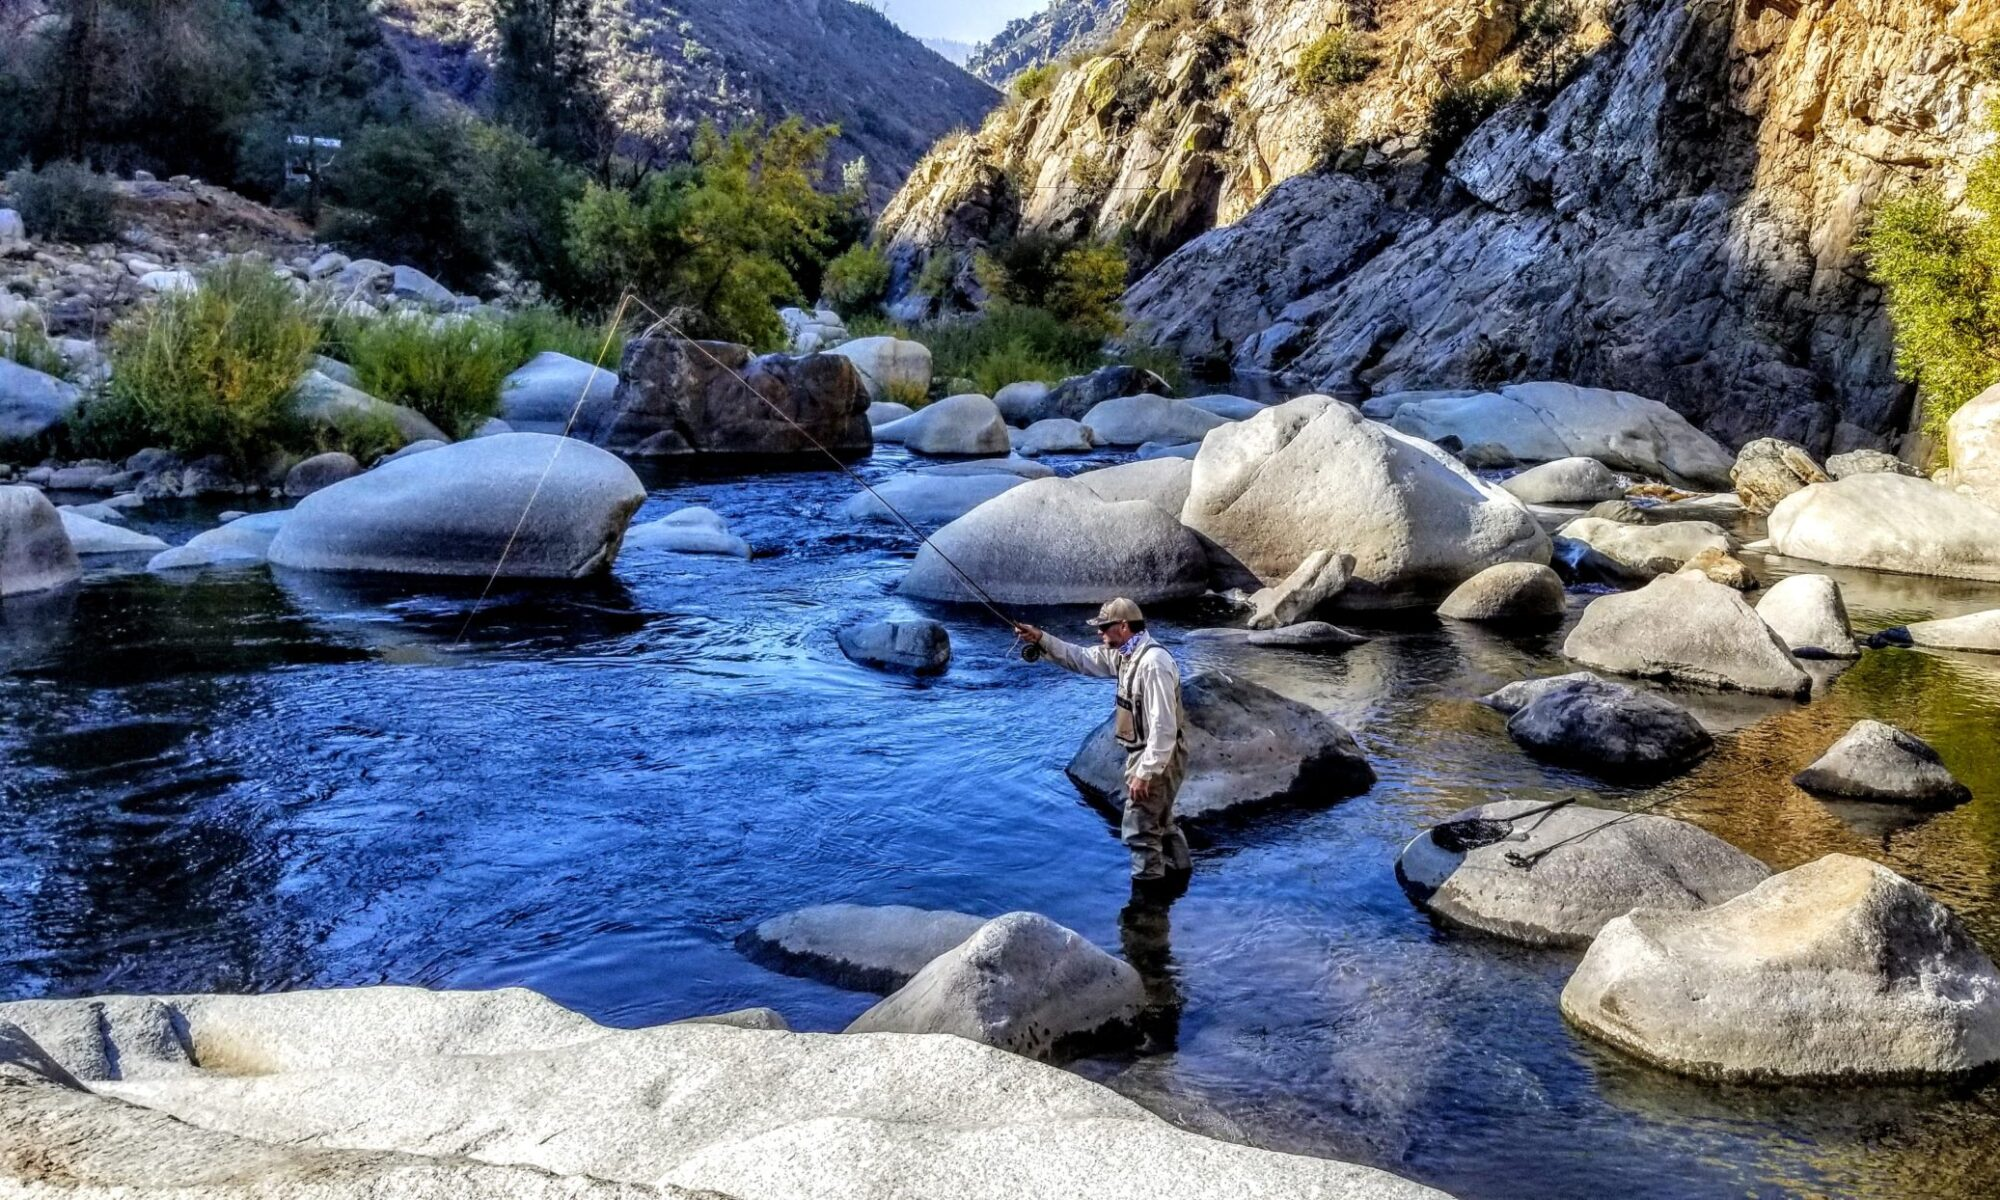 Fishing Report - Kern River, Owens River and Lake Crowley. Fly Fishing Reports, Video Reports, Fly Tying Videos and More!